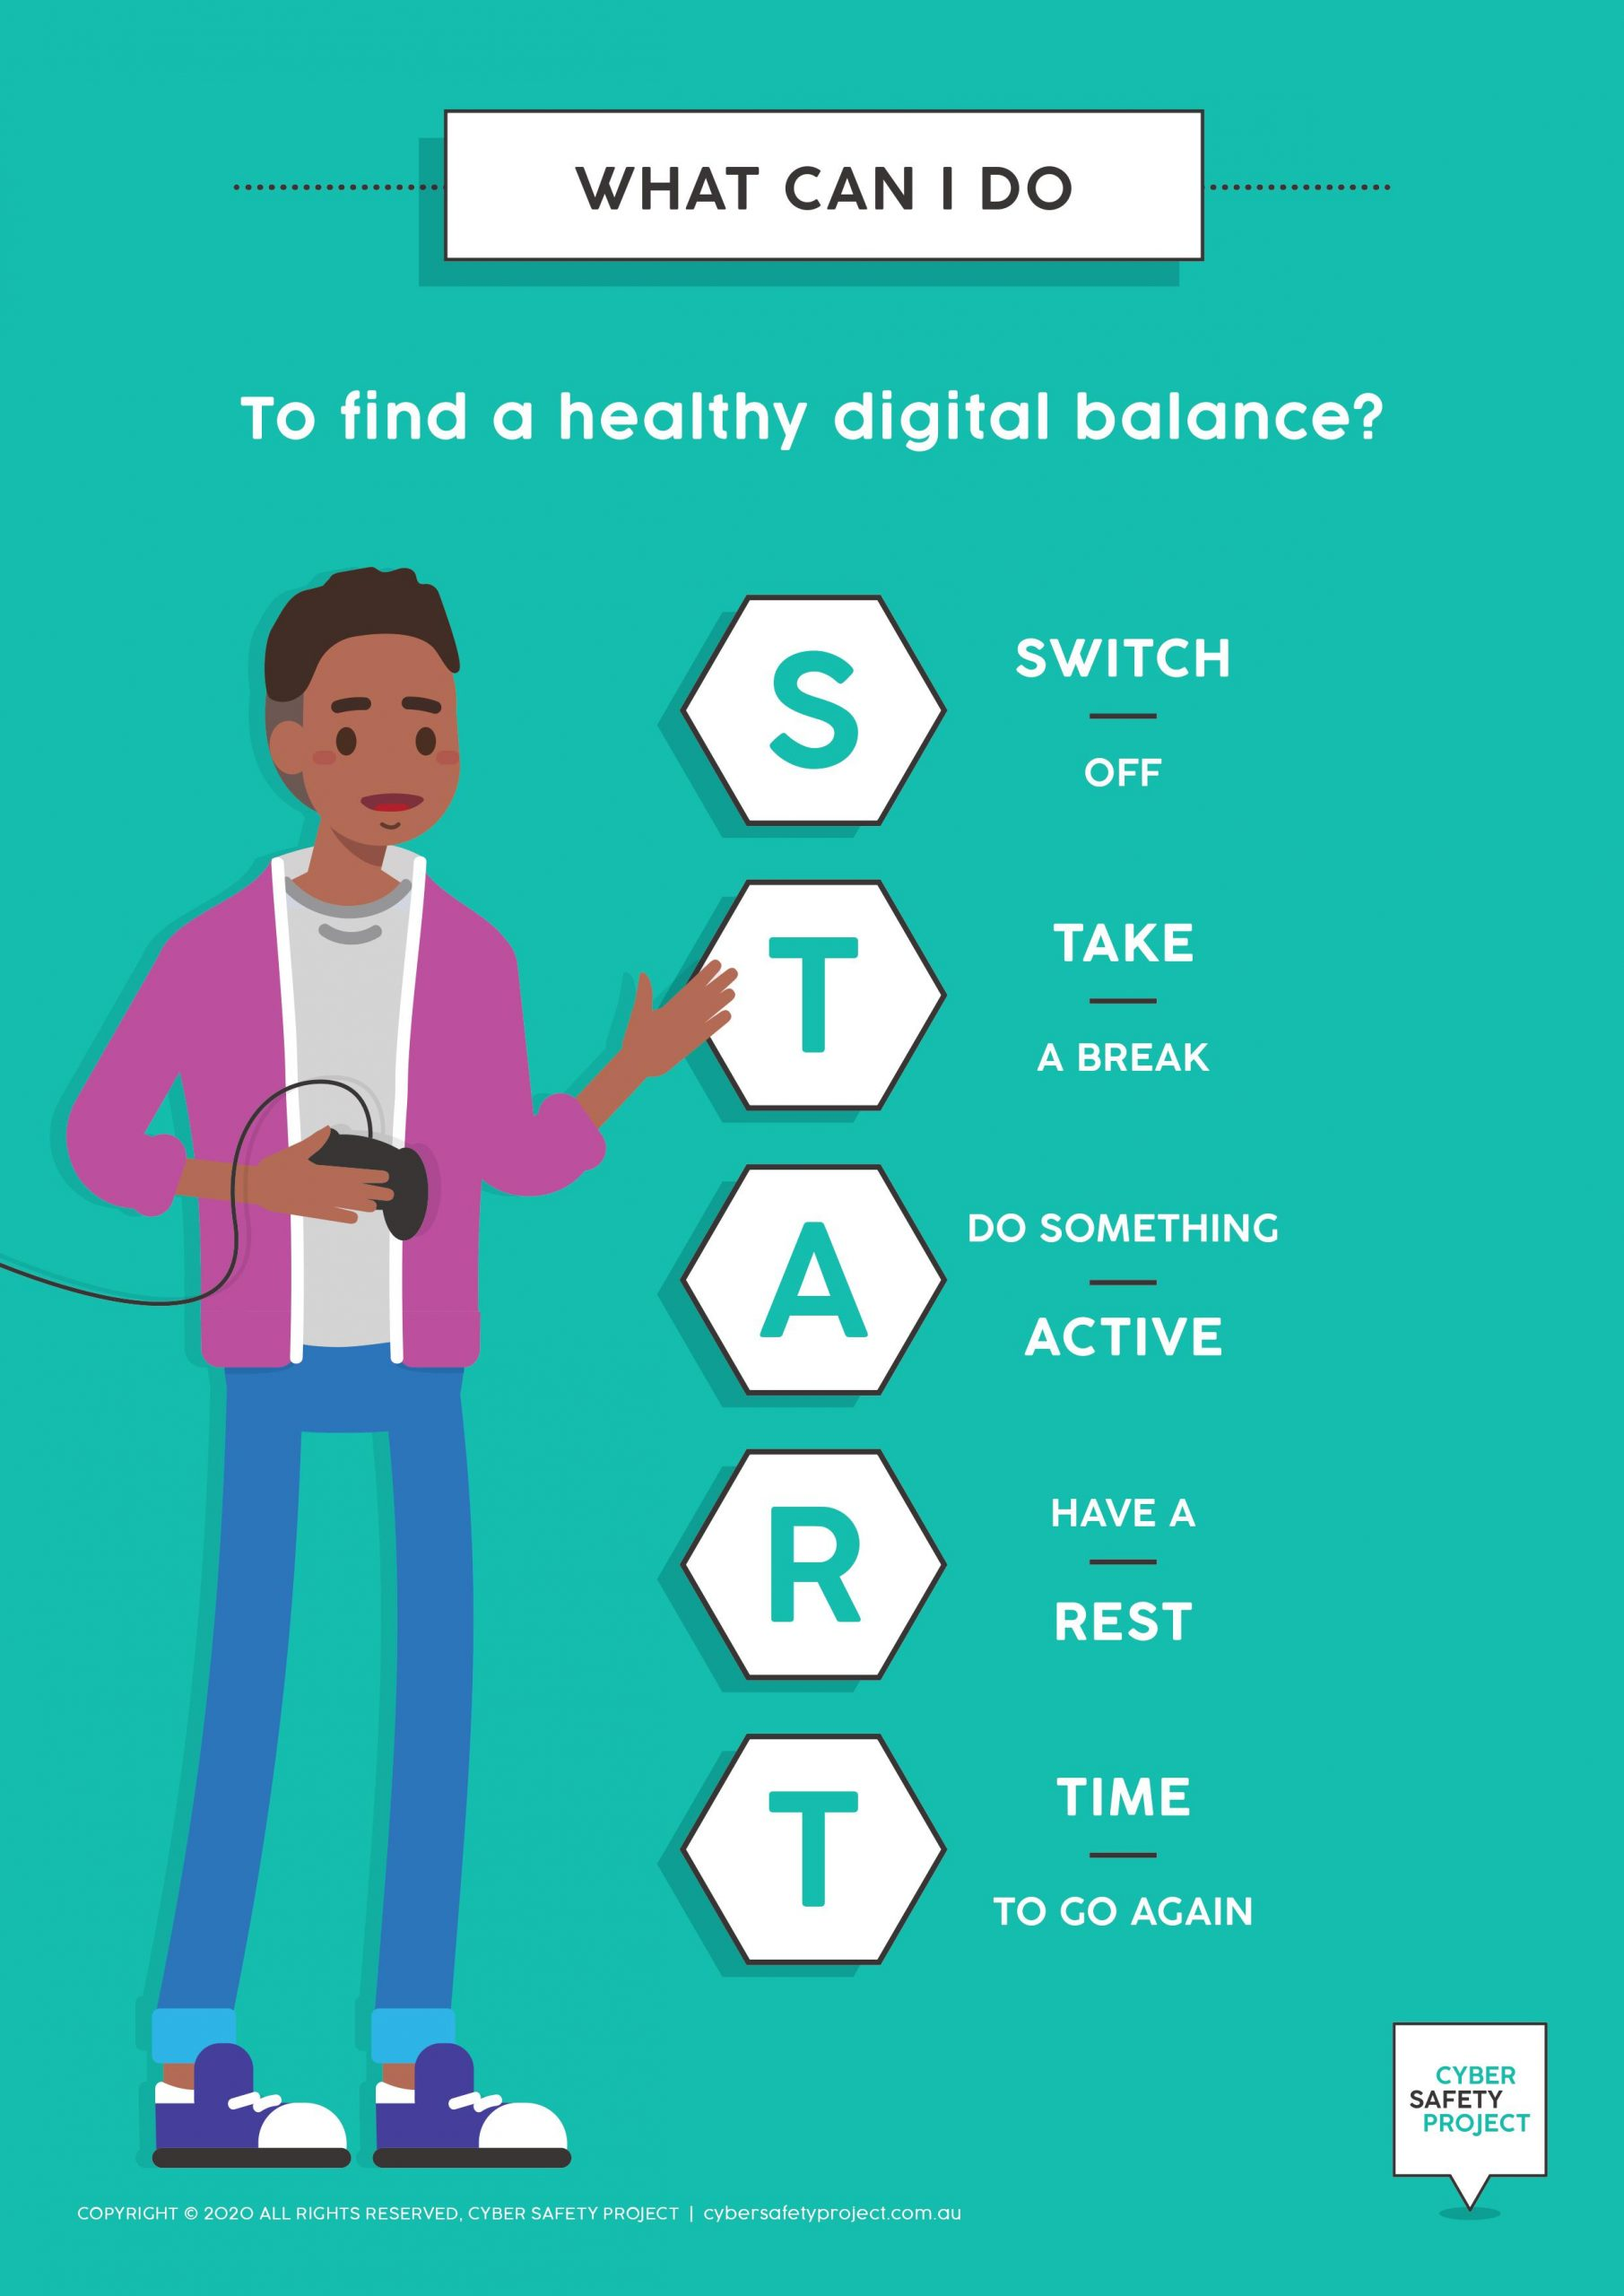 Cyber Safety Screen Time Habits Poster